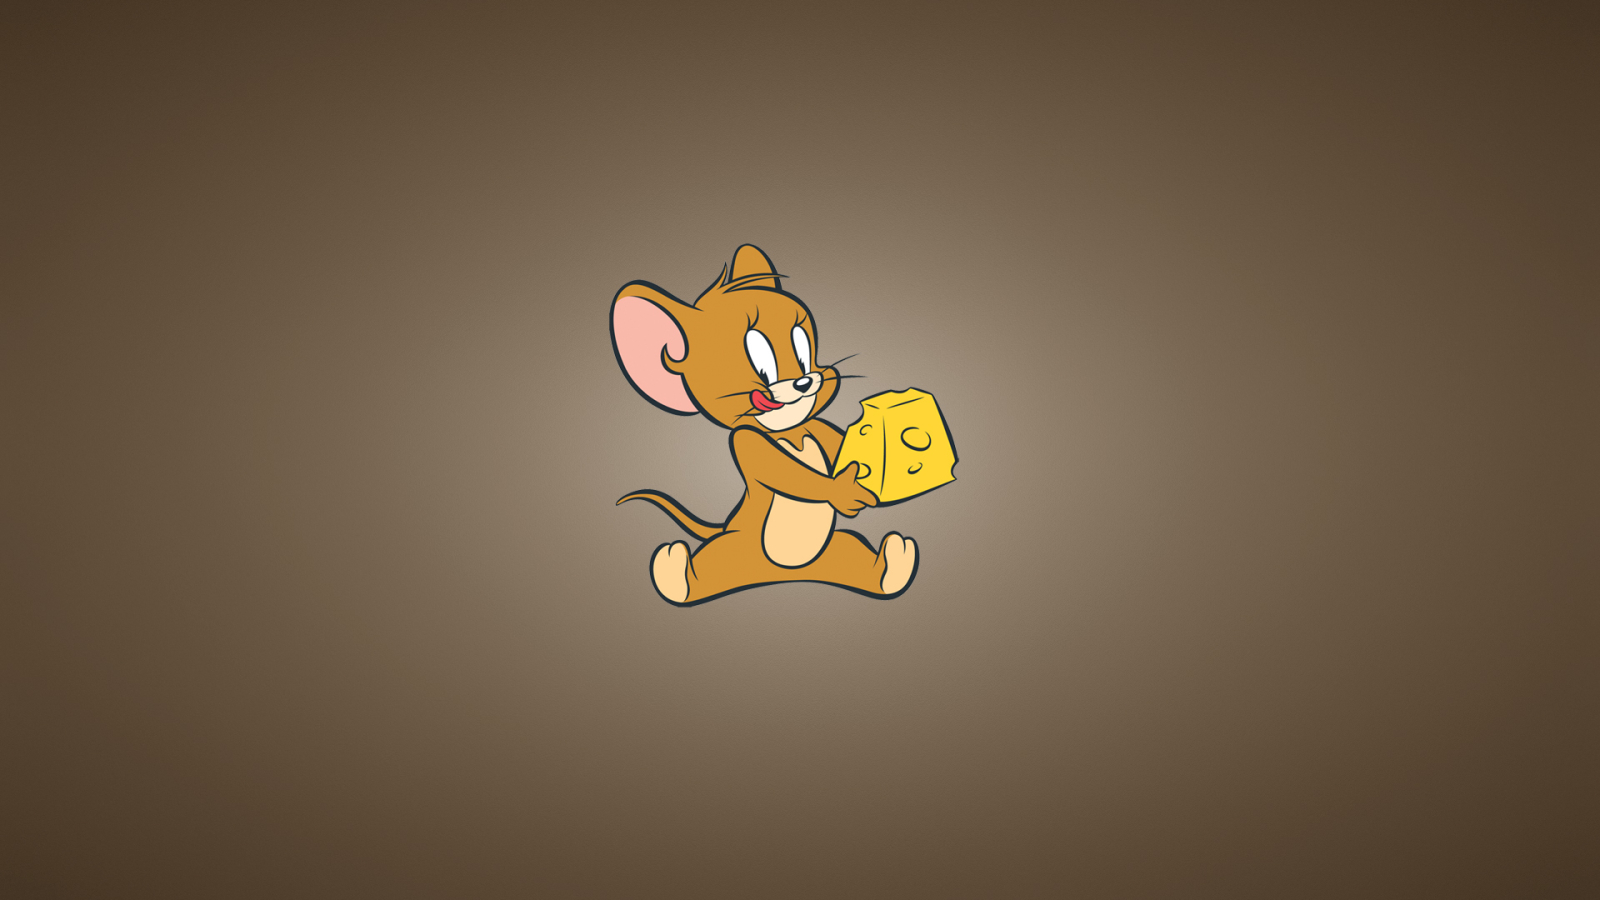 1600x900 tom and jerry, cheese, mouse 1600x900 Resolution ...